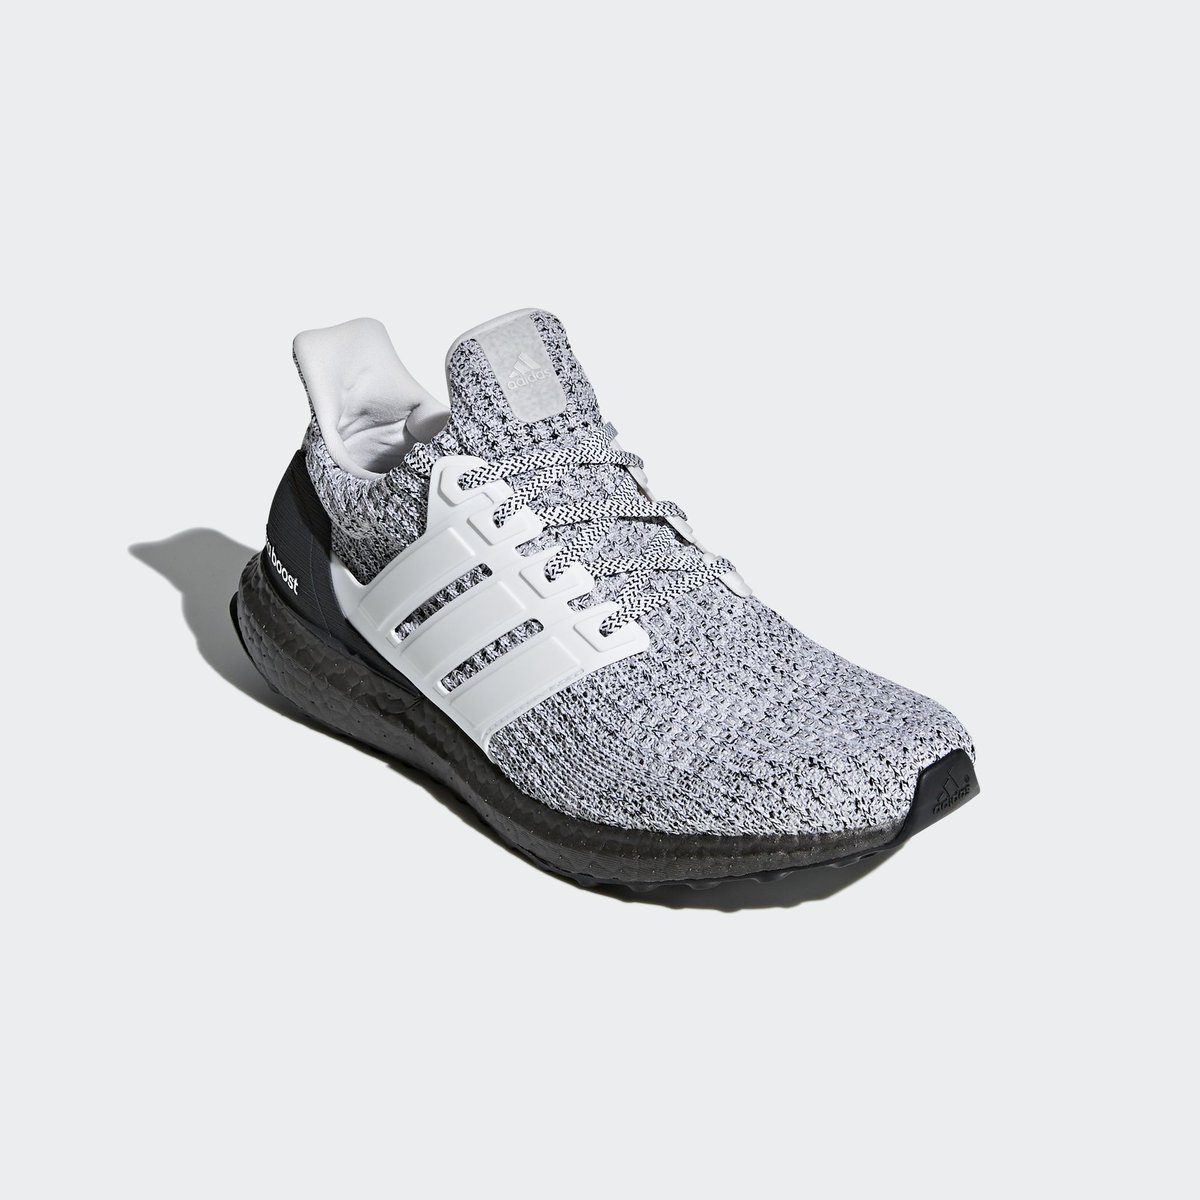 f5a53faba55 Now available on  Eastbay. adidas Ultra Boost 4.0 Oreo. —   http   bit.ly 2F38Ebj pic.twitter.com 7VwQTayvxB